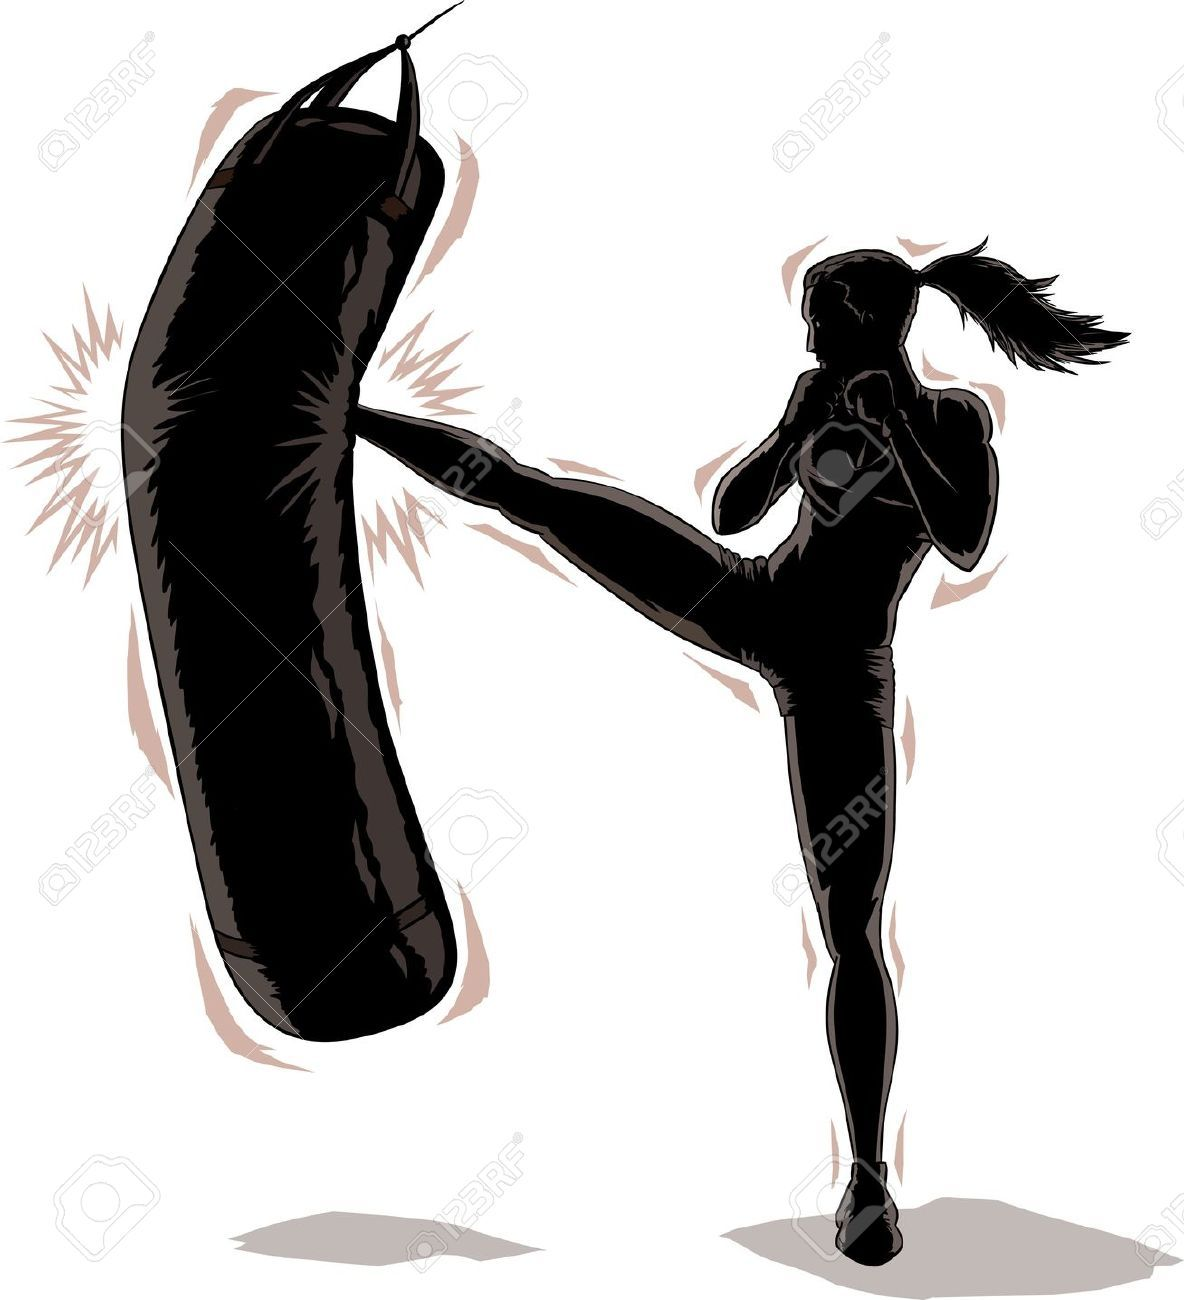 Stock photos images royalty. Boxer clipart kickboxing